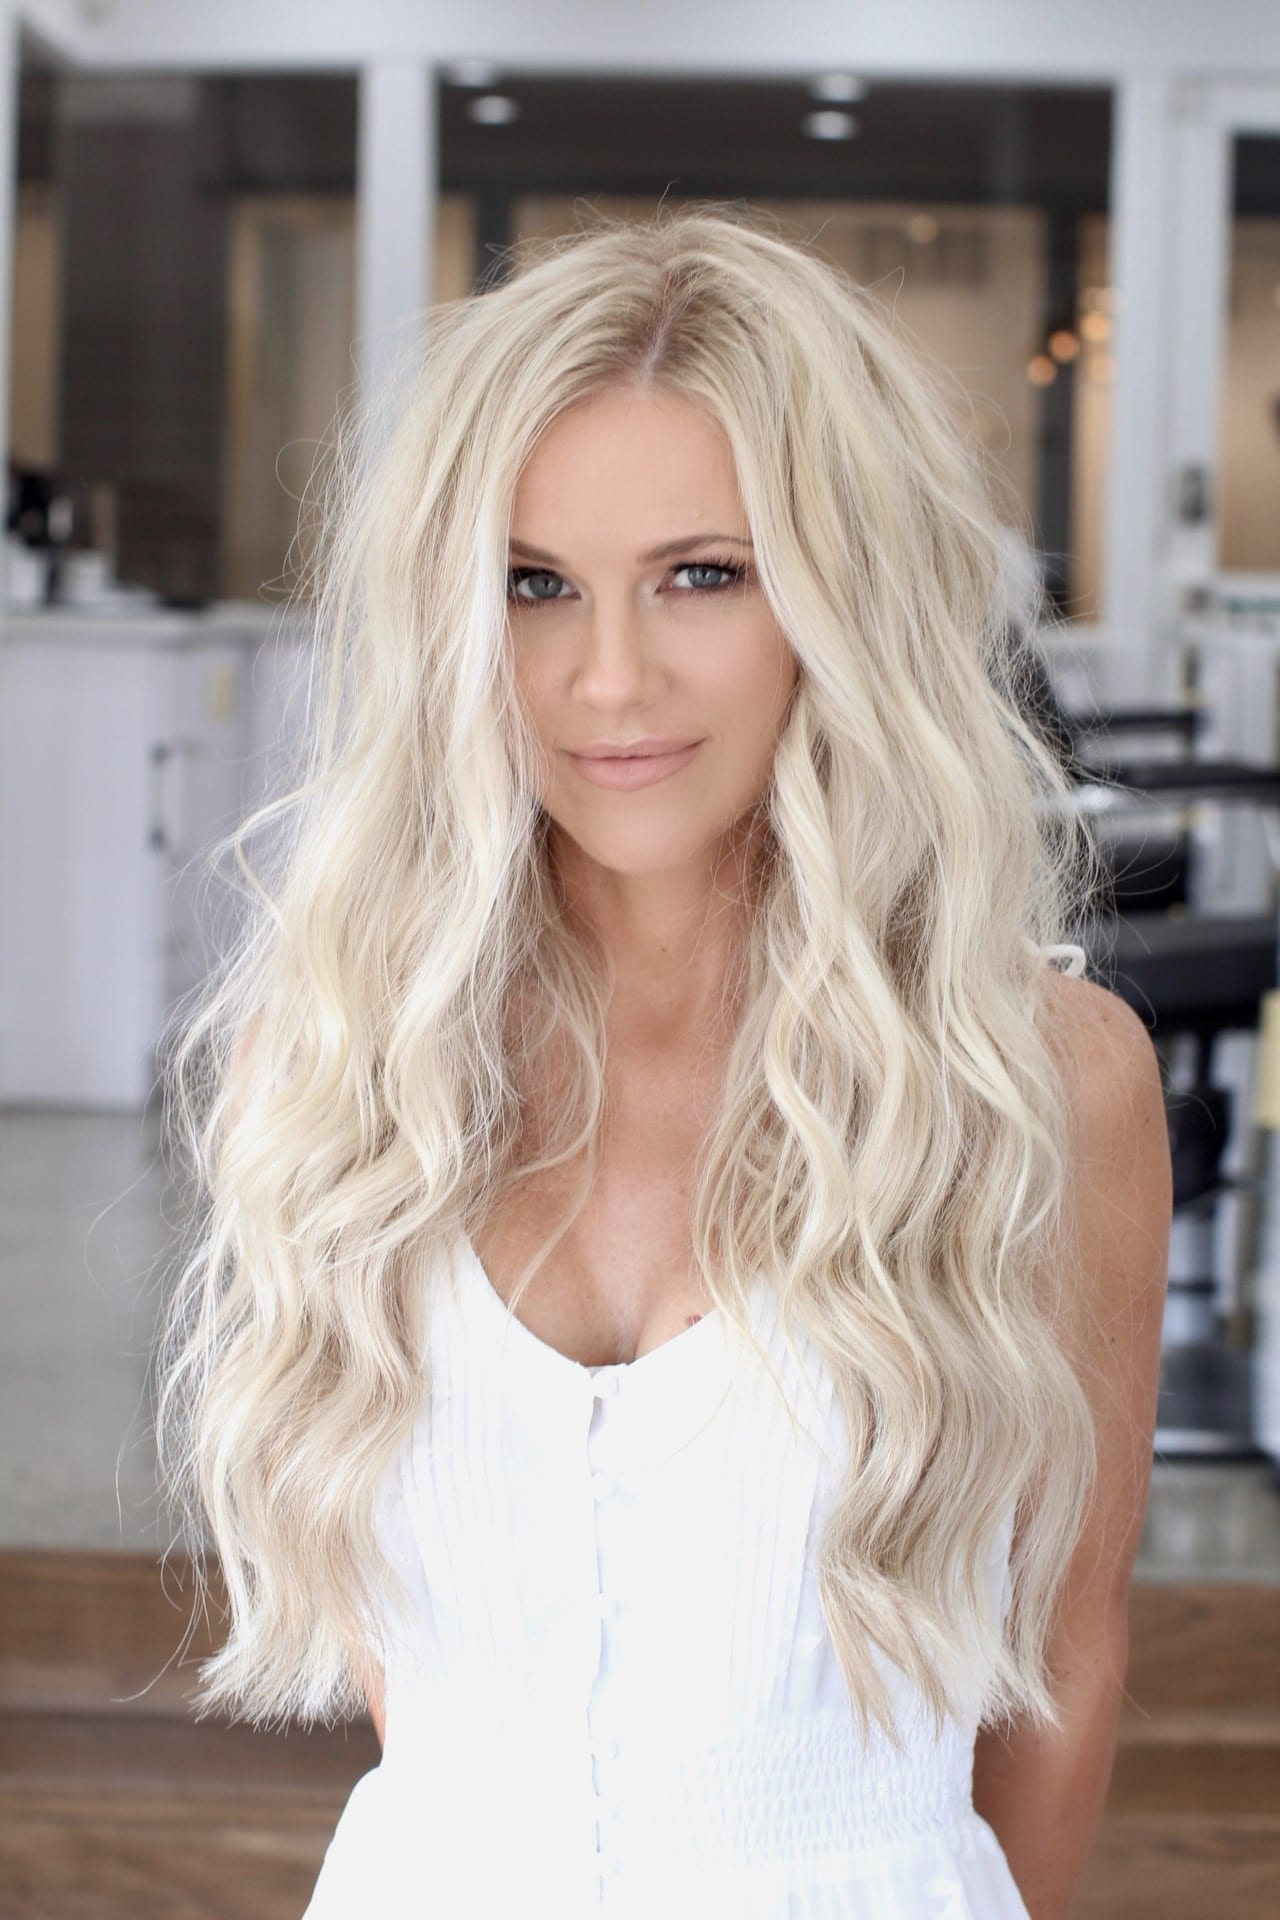 Blonde Hair Extensions - Natural Beaded Rows